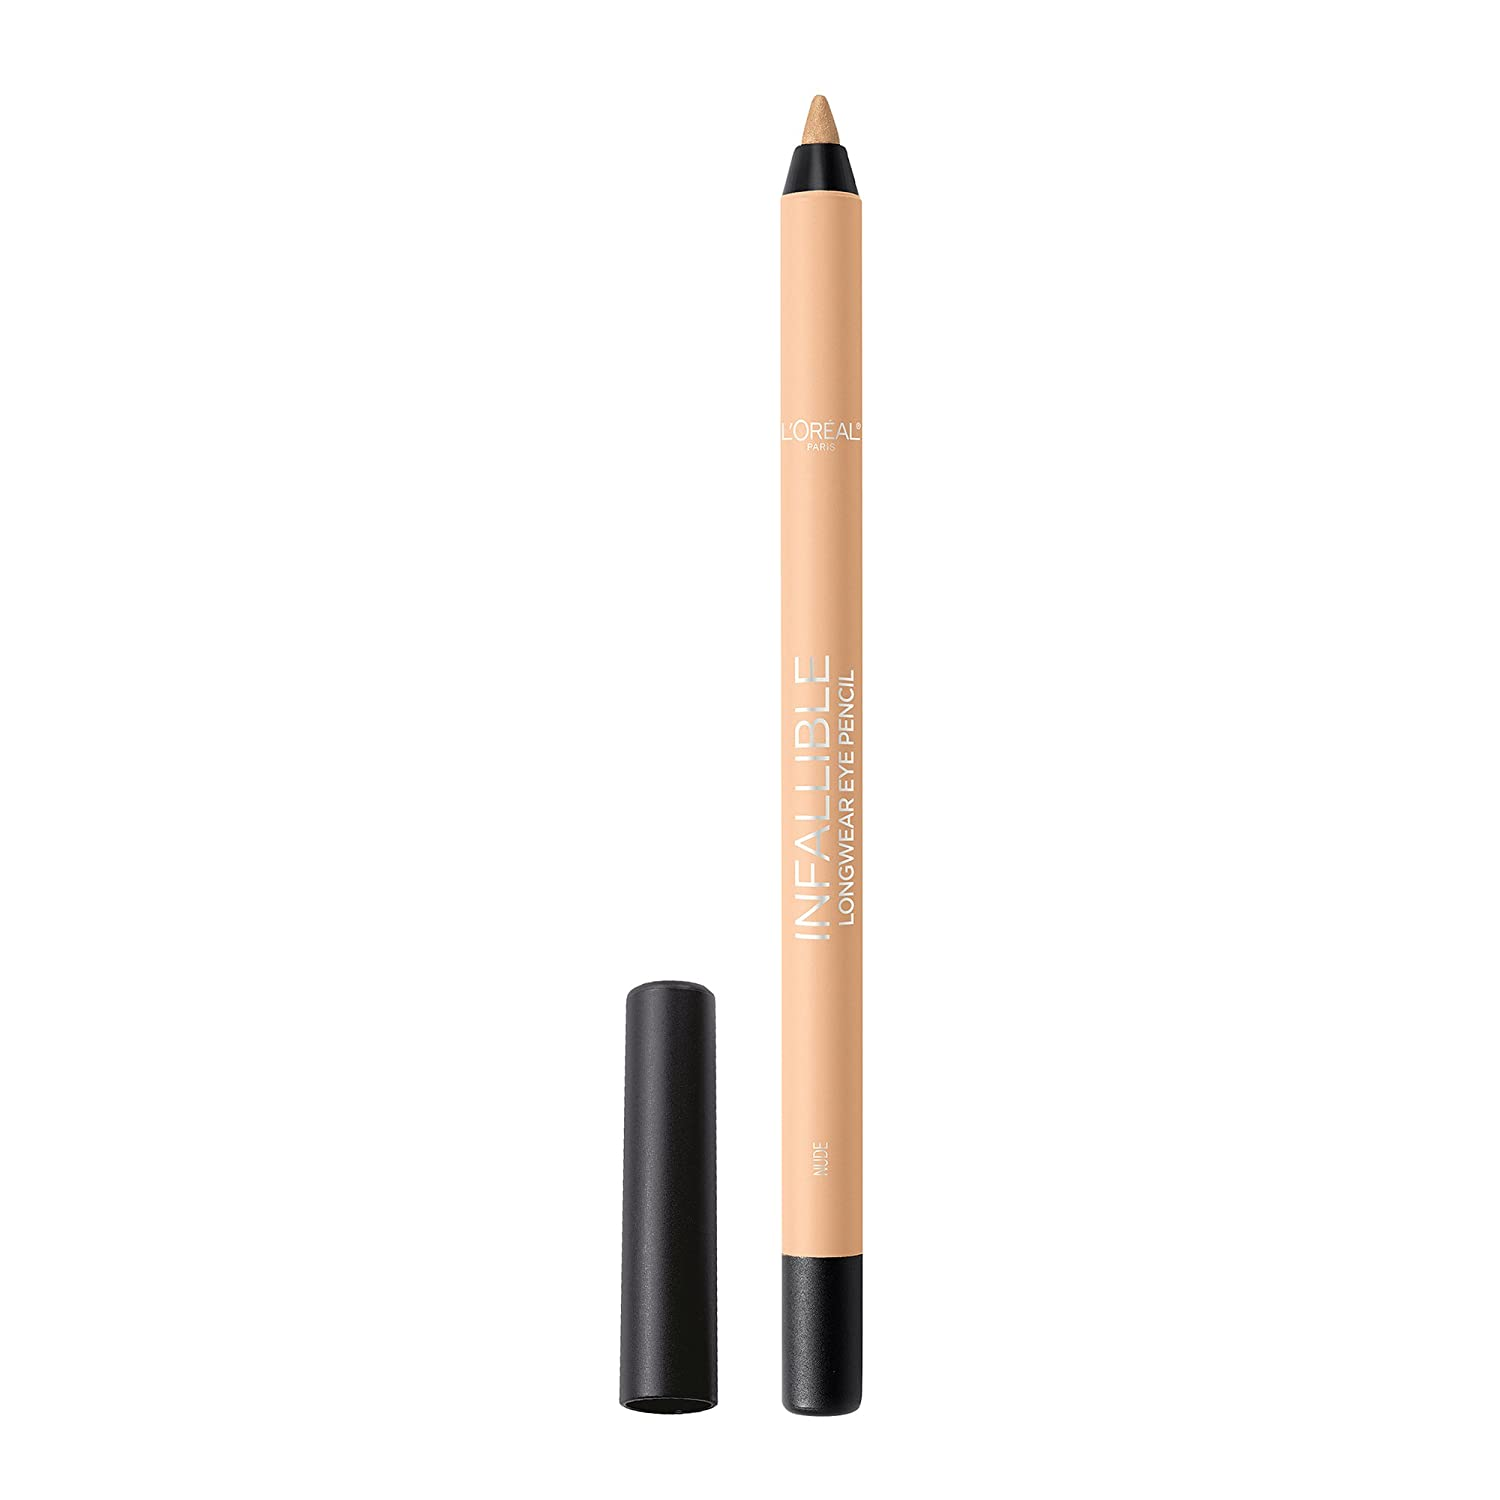 L'Oreal Paris Infallible Pro-last Pencil Eyeliner Waterproof, Black 930, 1.2g L' Oreal Paris